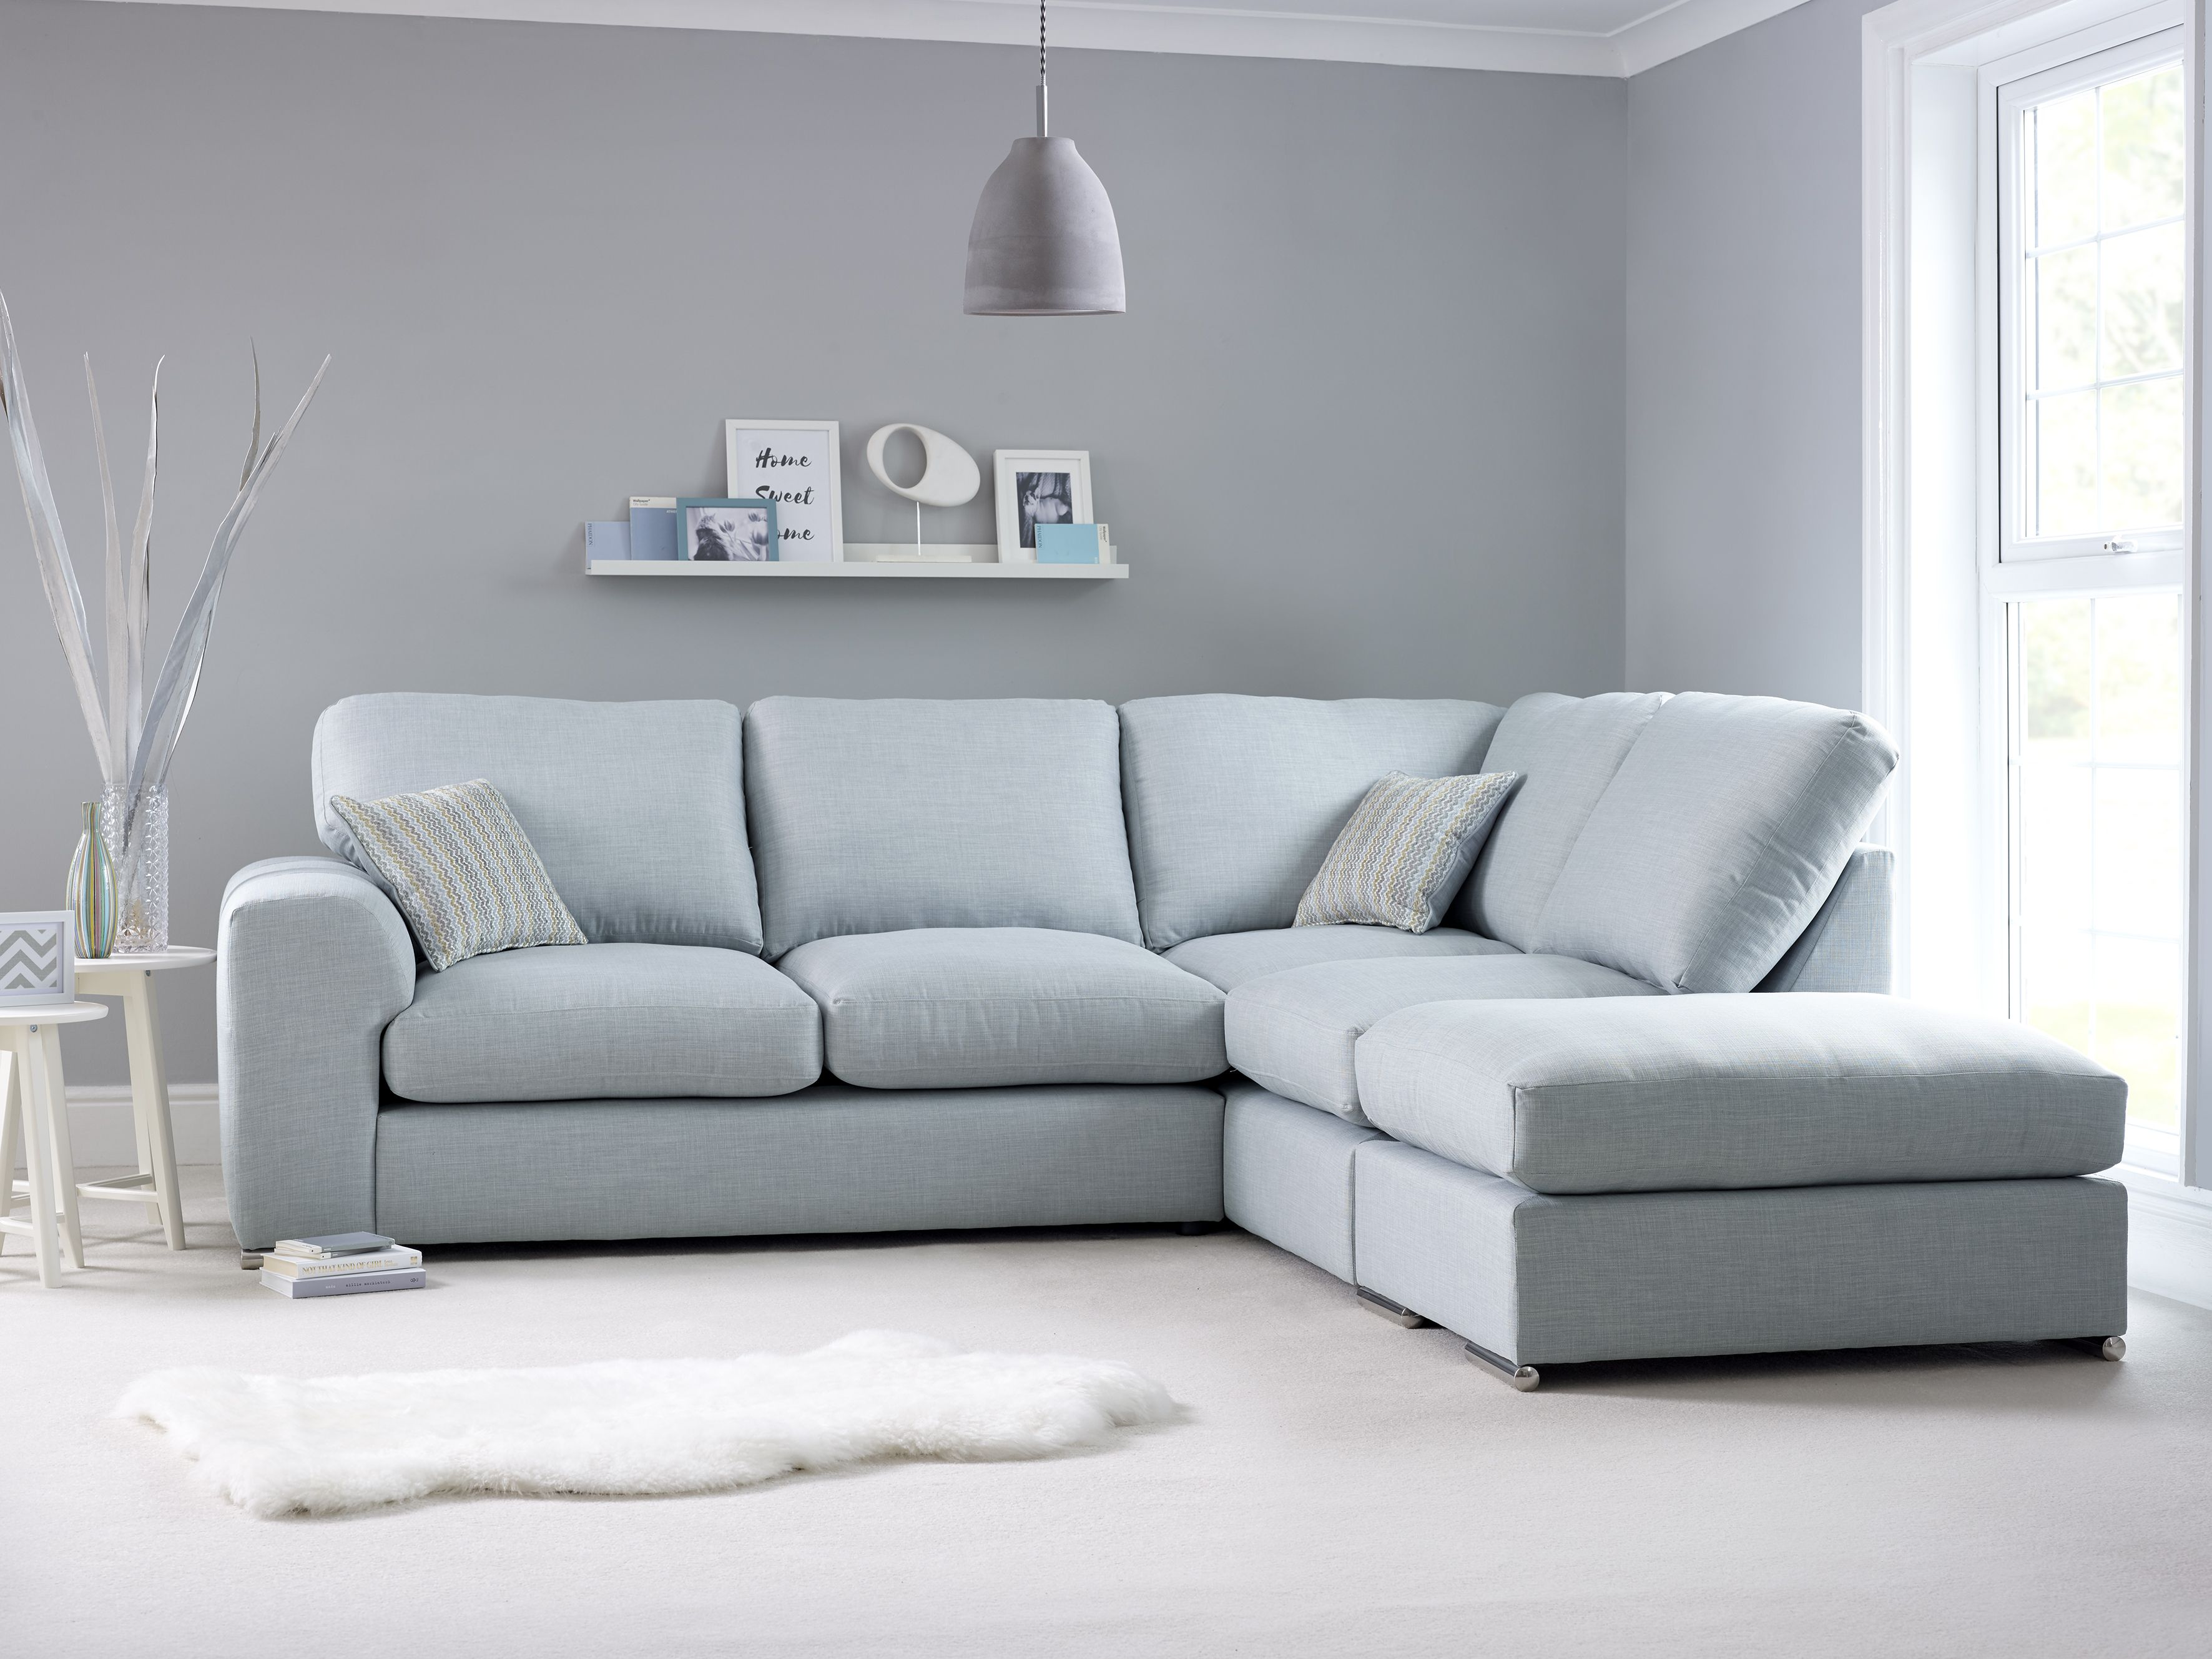 Sofa King Dubai offers the quality sofa repair and refurbishing